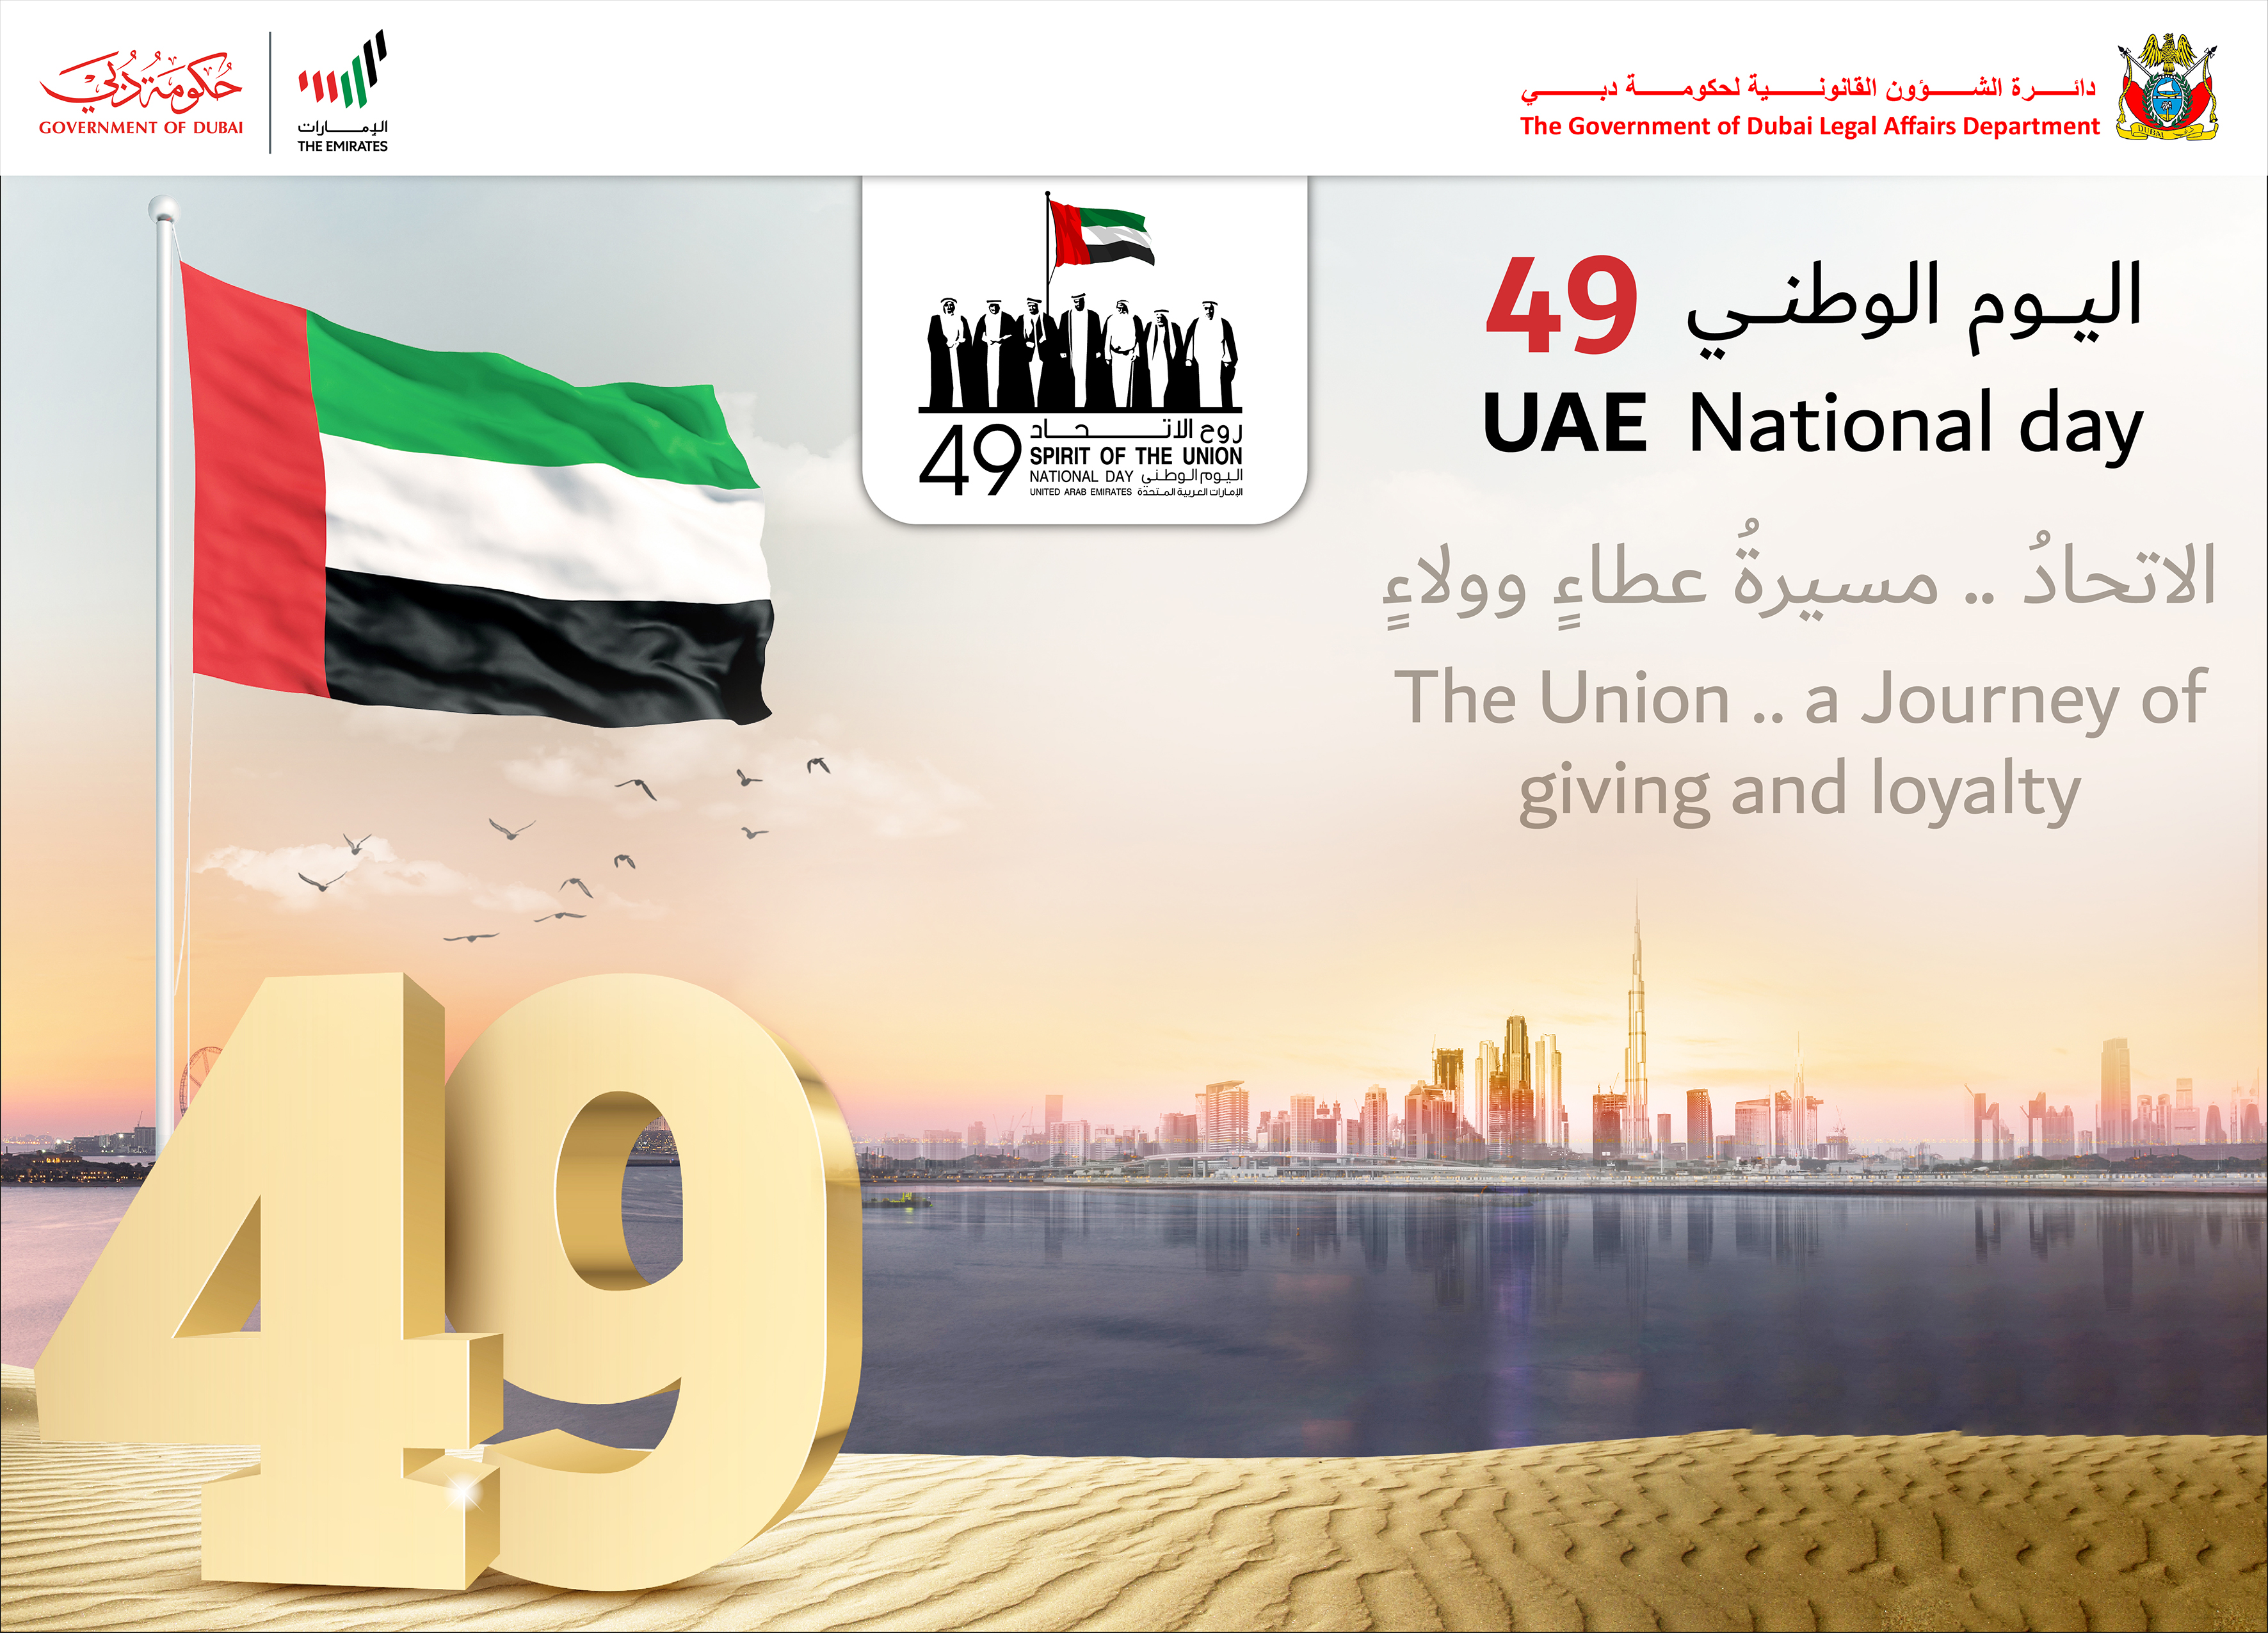 Statement by His Excellency Dr. Lowai Mohamed Belhoul, Director General of the Government of Dubai Legal Affairs Department on the Occasion of the UAE's 49th  National Day